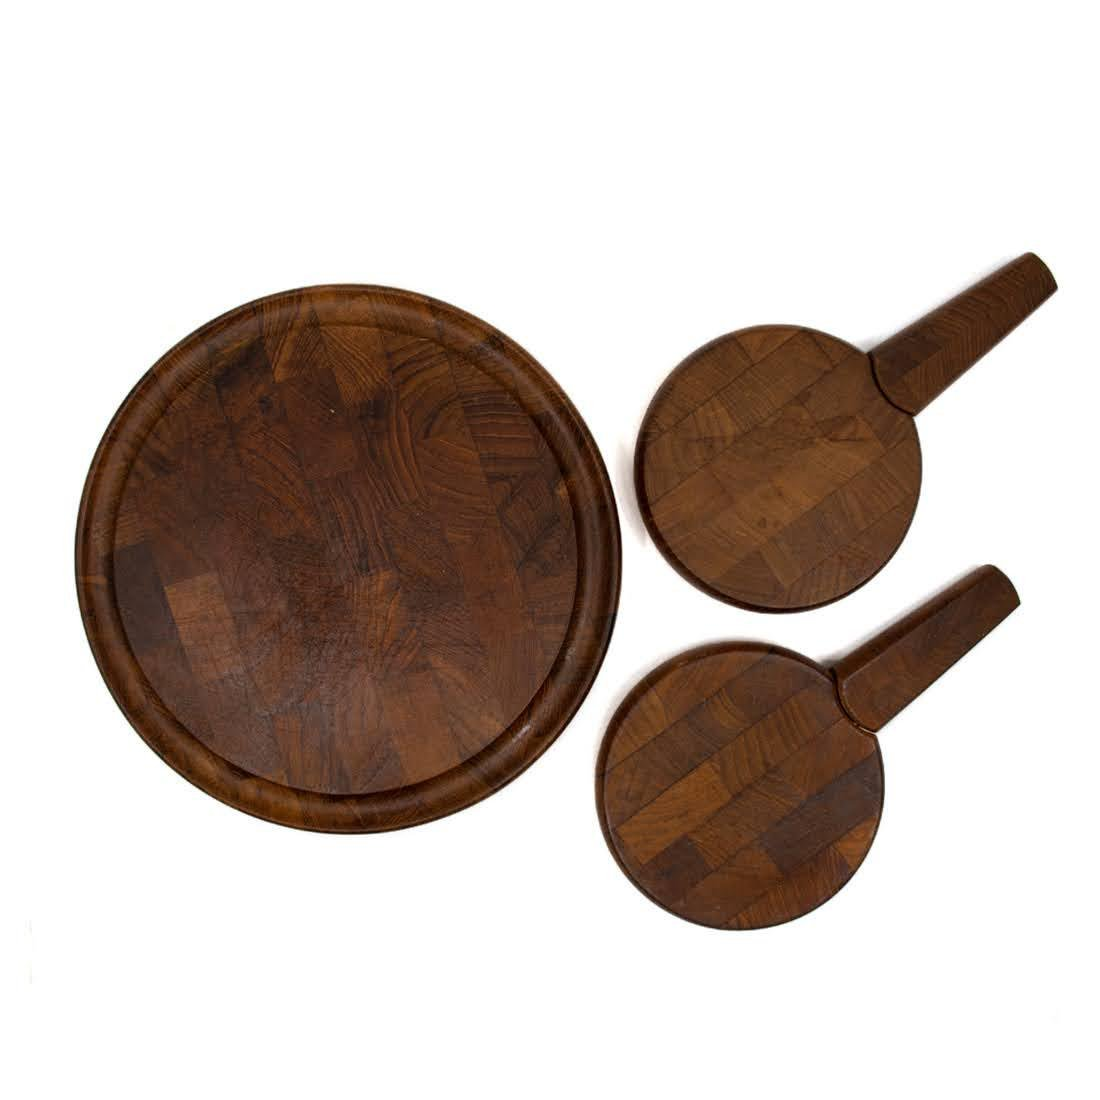 3 MCM Danish Teak Cheese Boards by Dansk and Digsmed